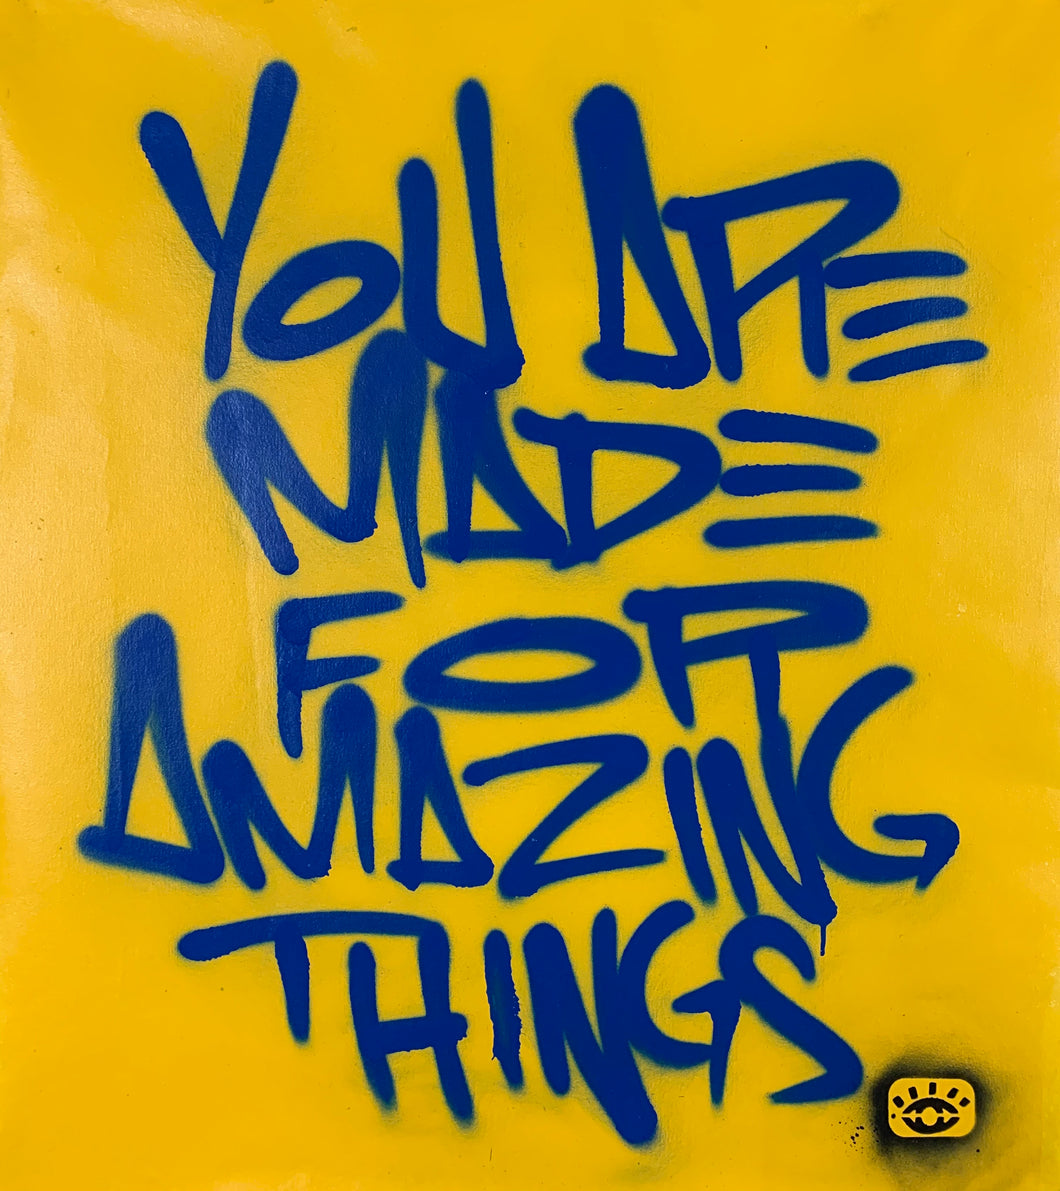 Amazing things tag / yellow + royal blue